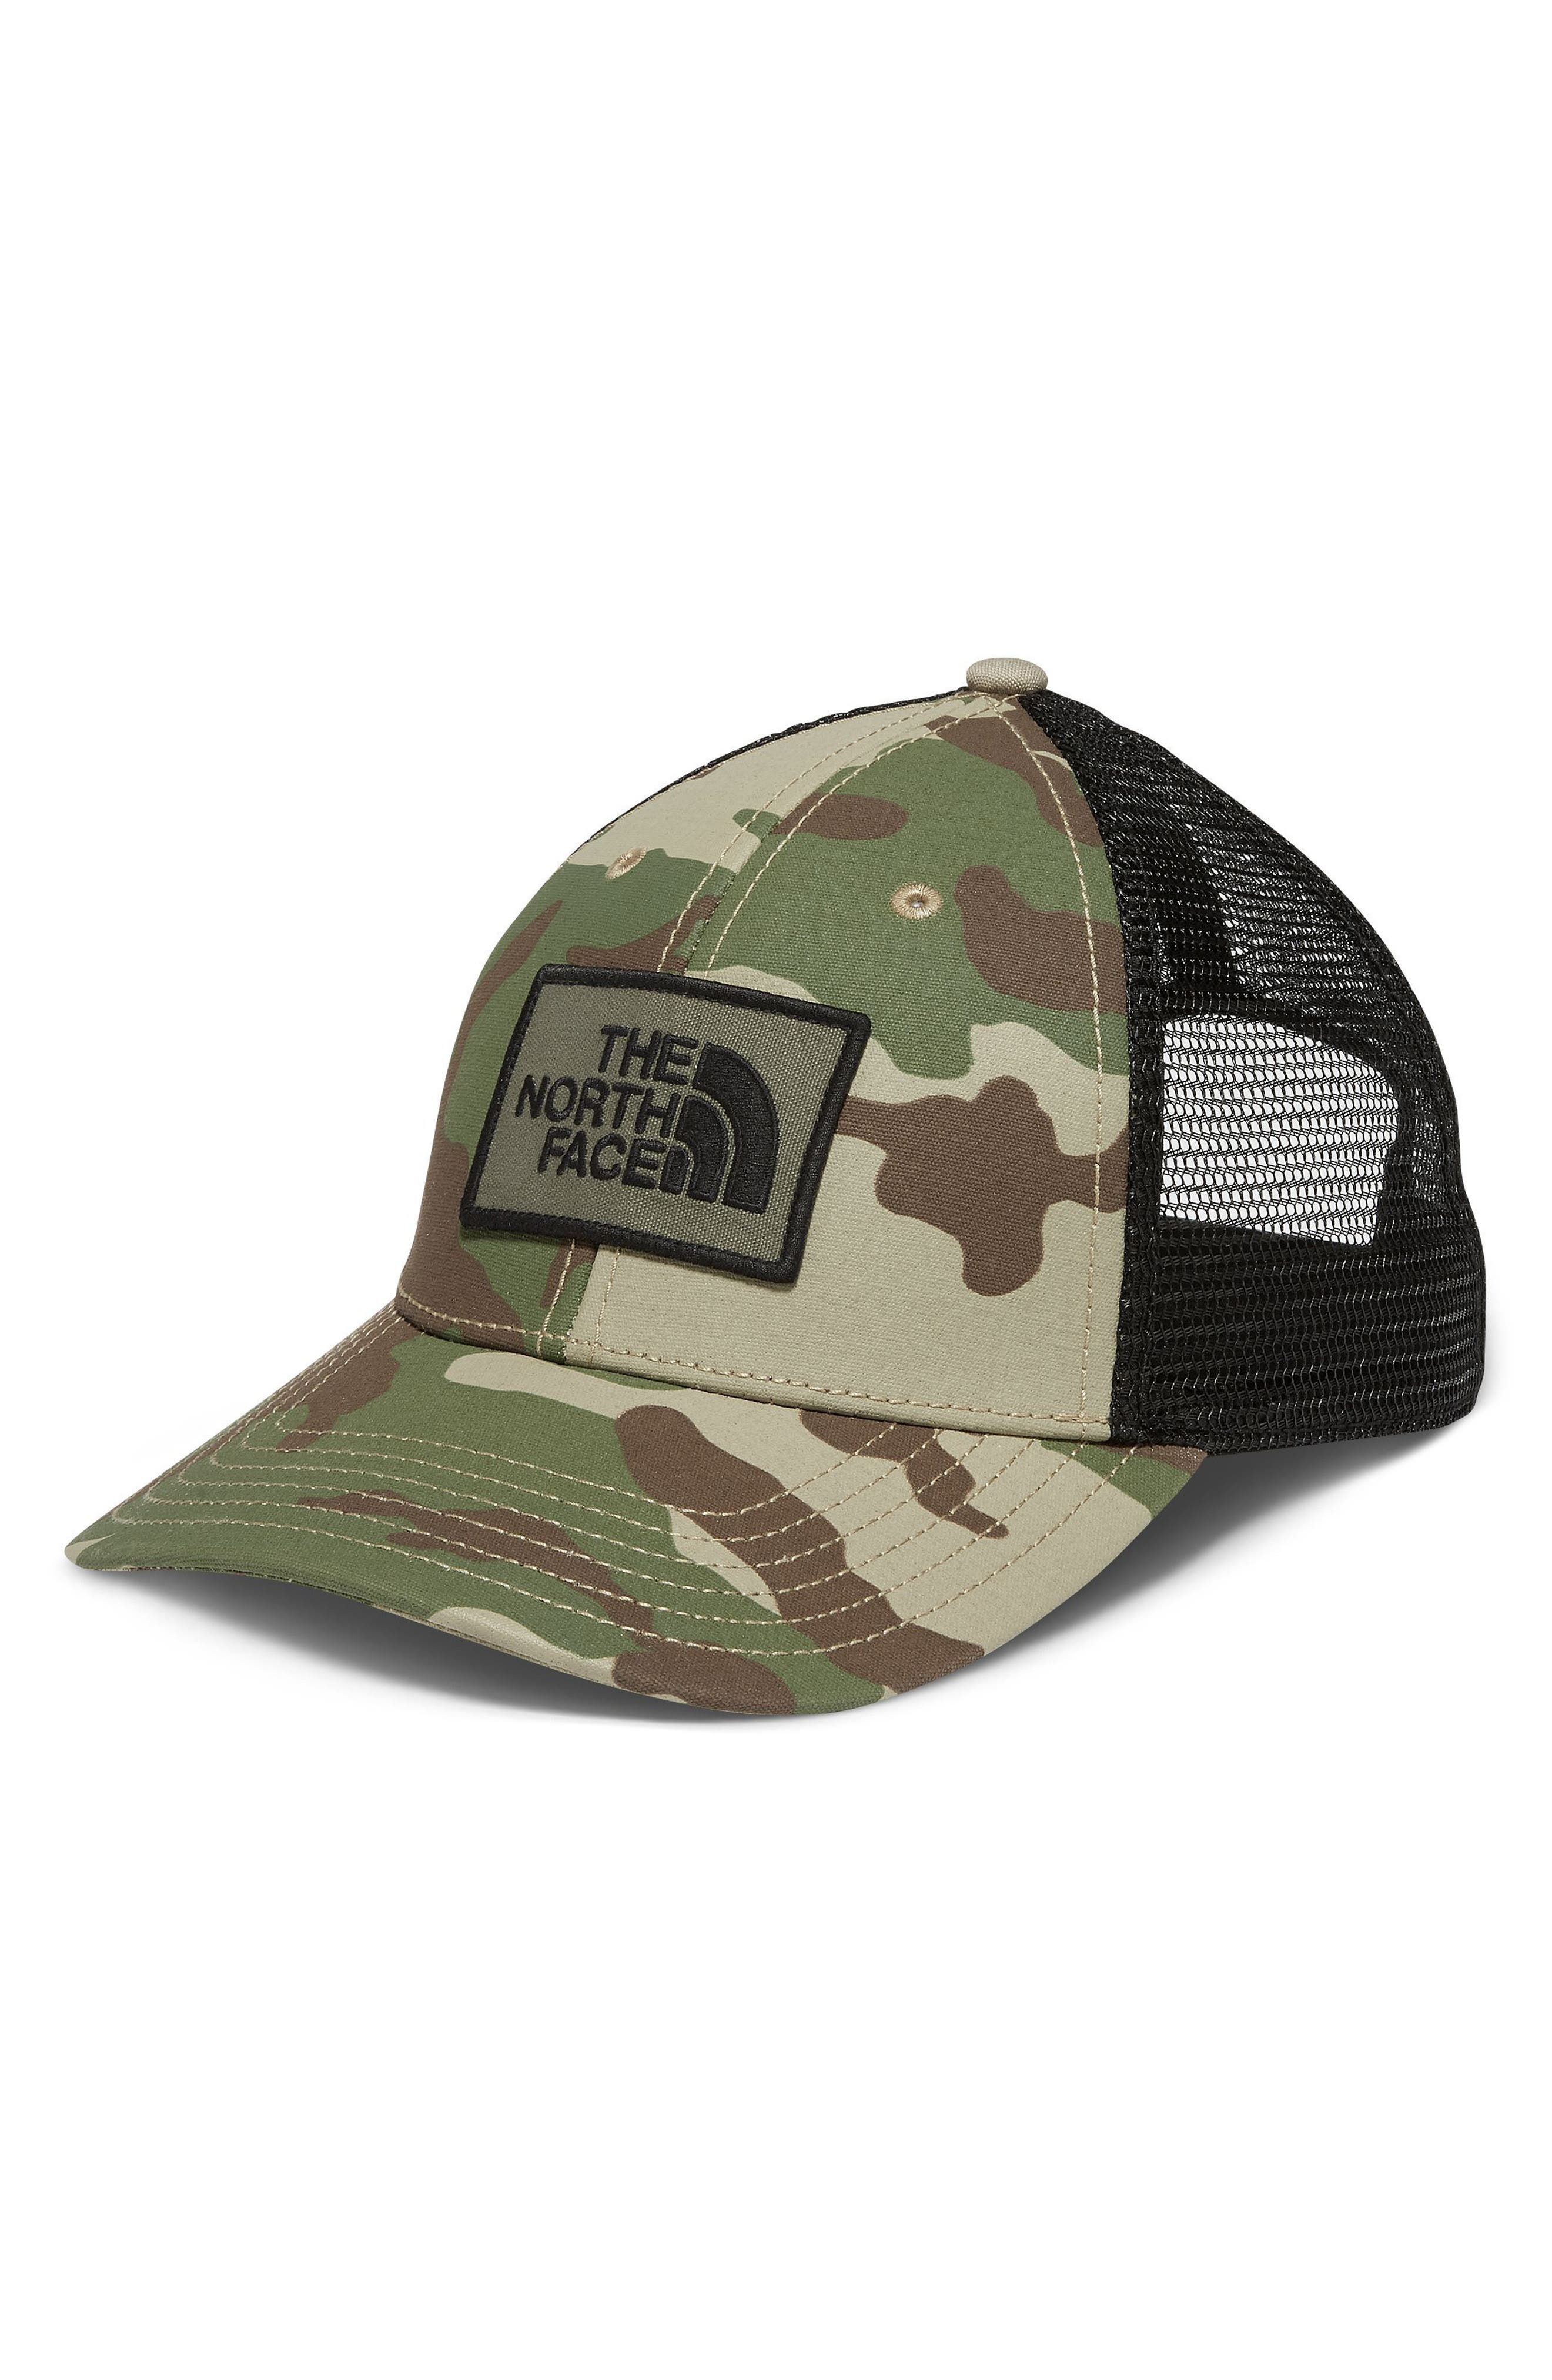 The North Face Print Mudder Trucker Hat